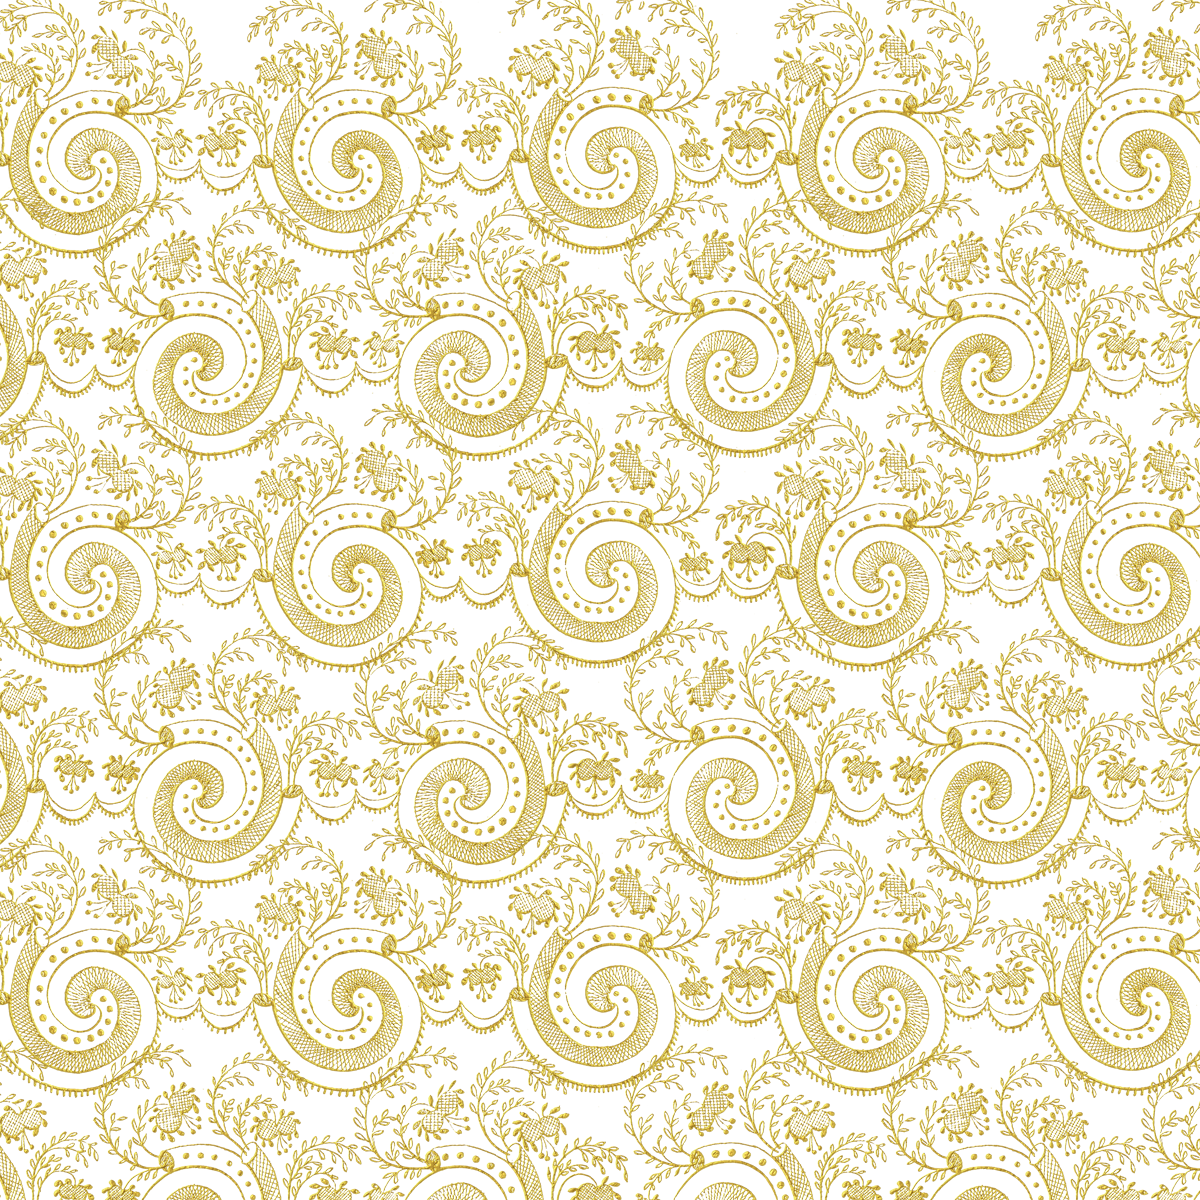 Black and gold backgrounds png. Images of design background